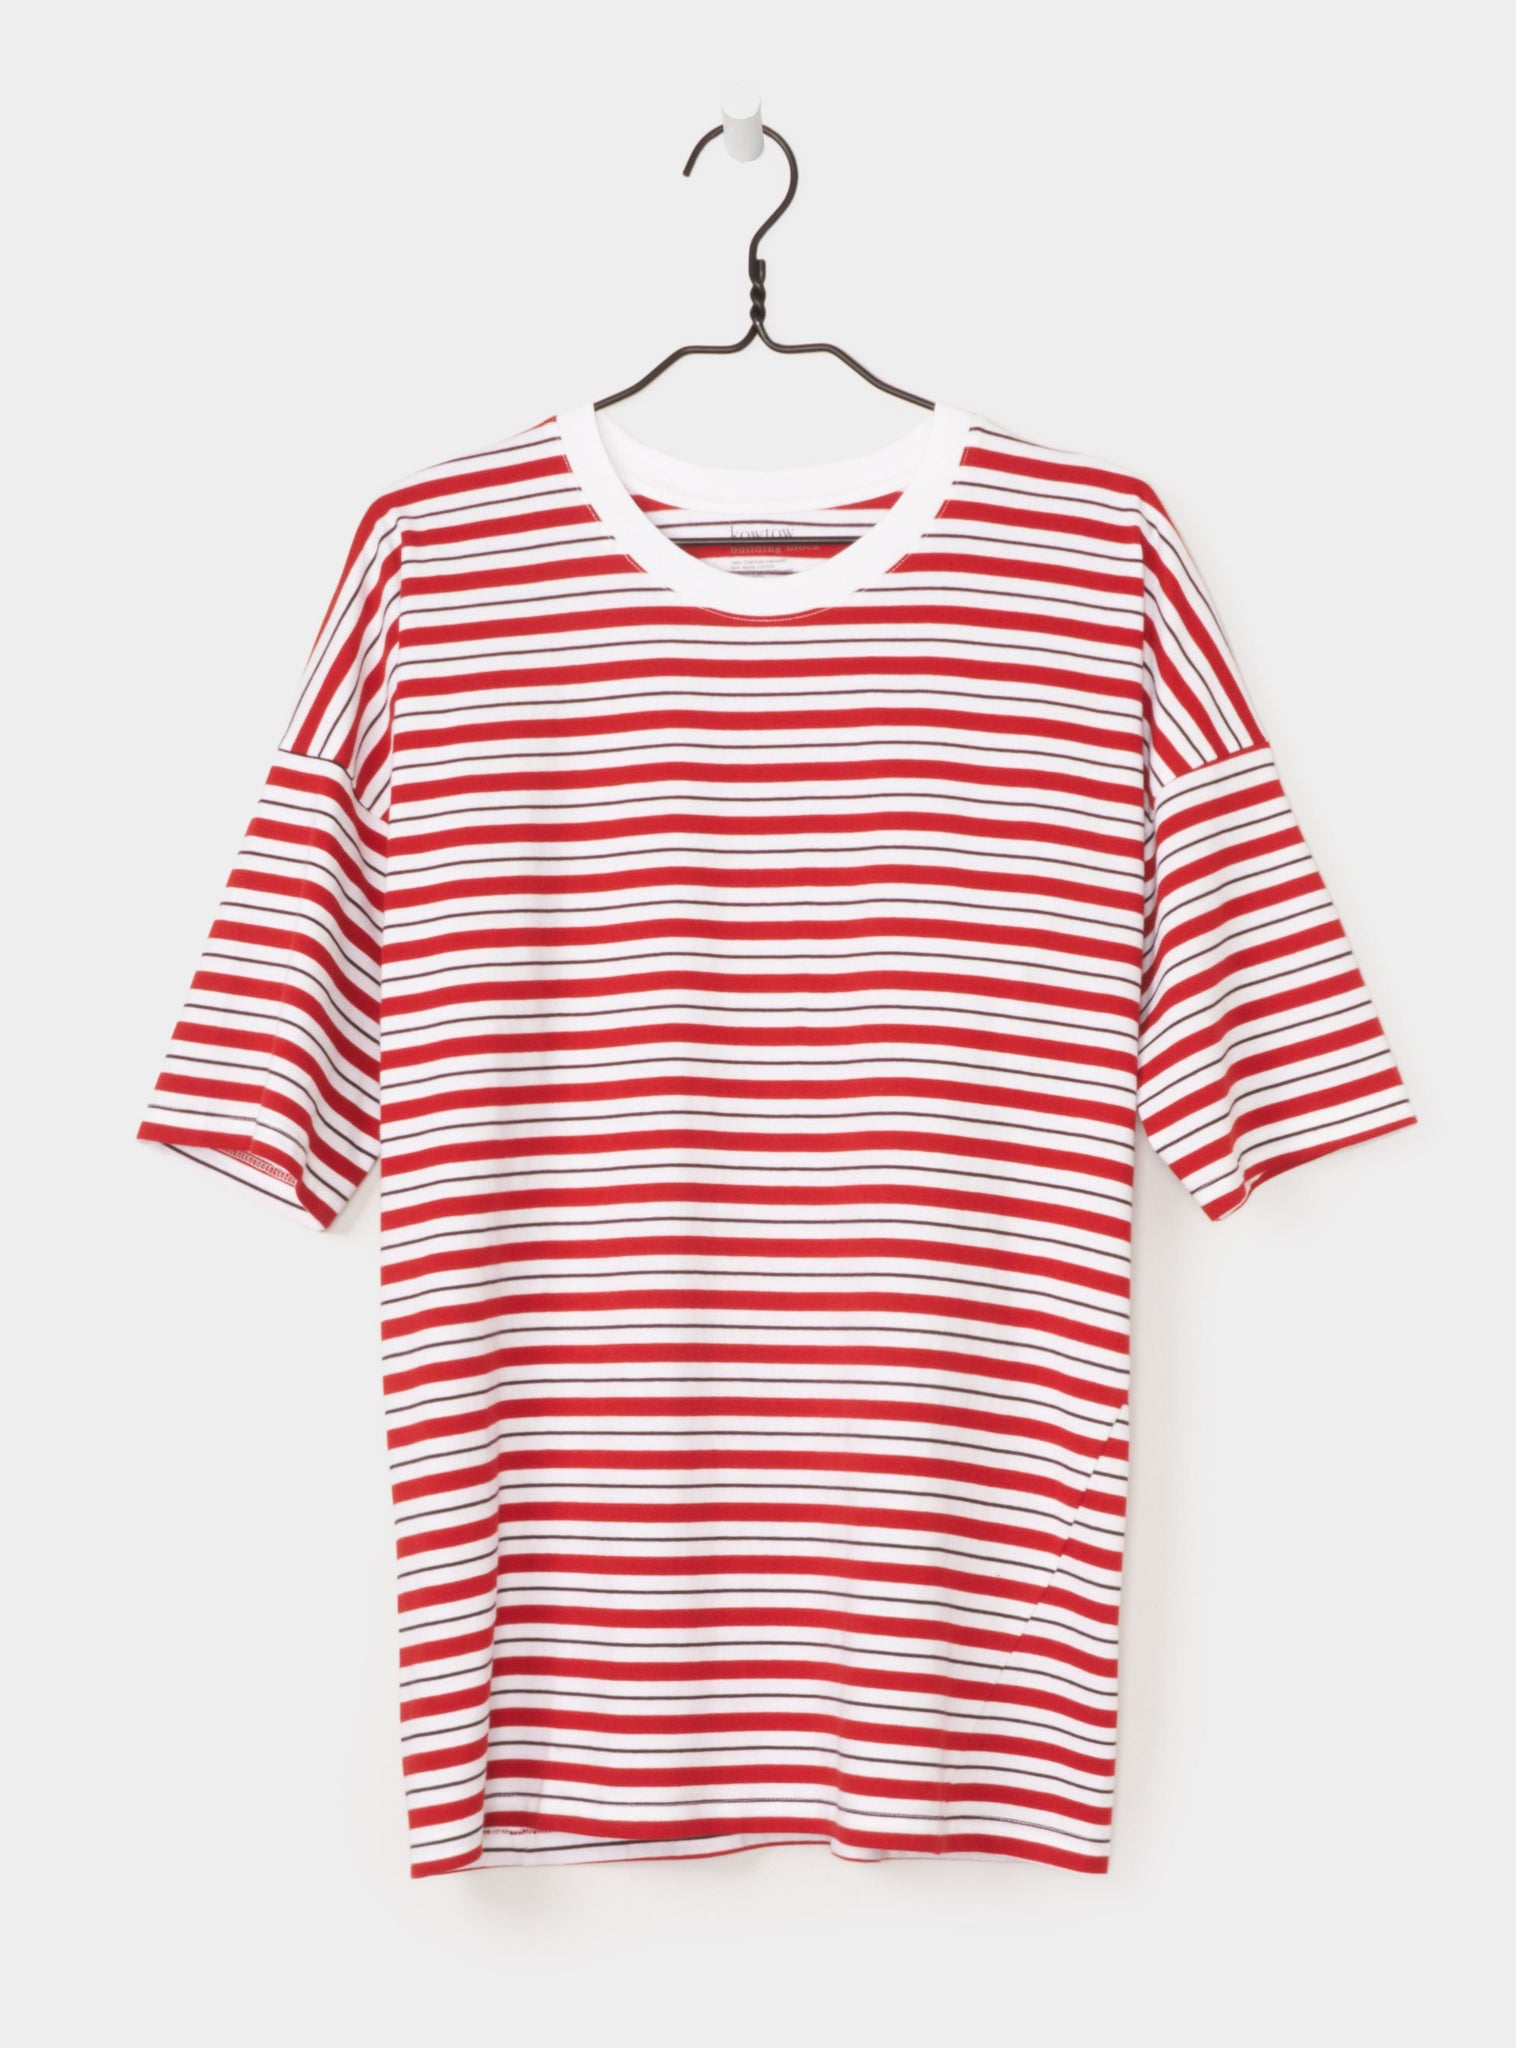 Tall Tee in Red Stripe